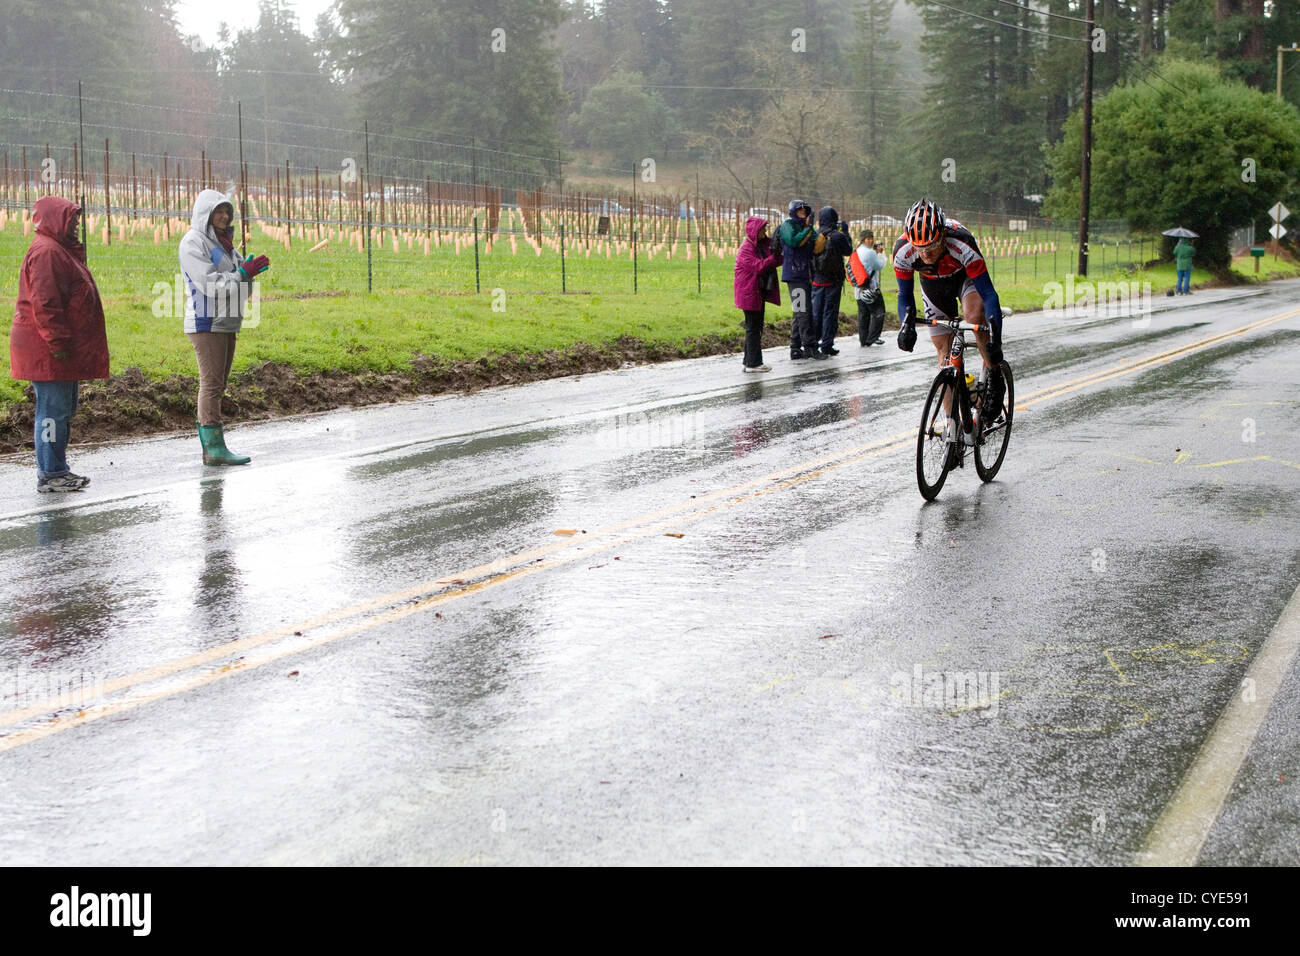 A lone cyclist charges up a hill during the AMGEN Tour of California. - Stock Image